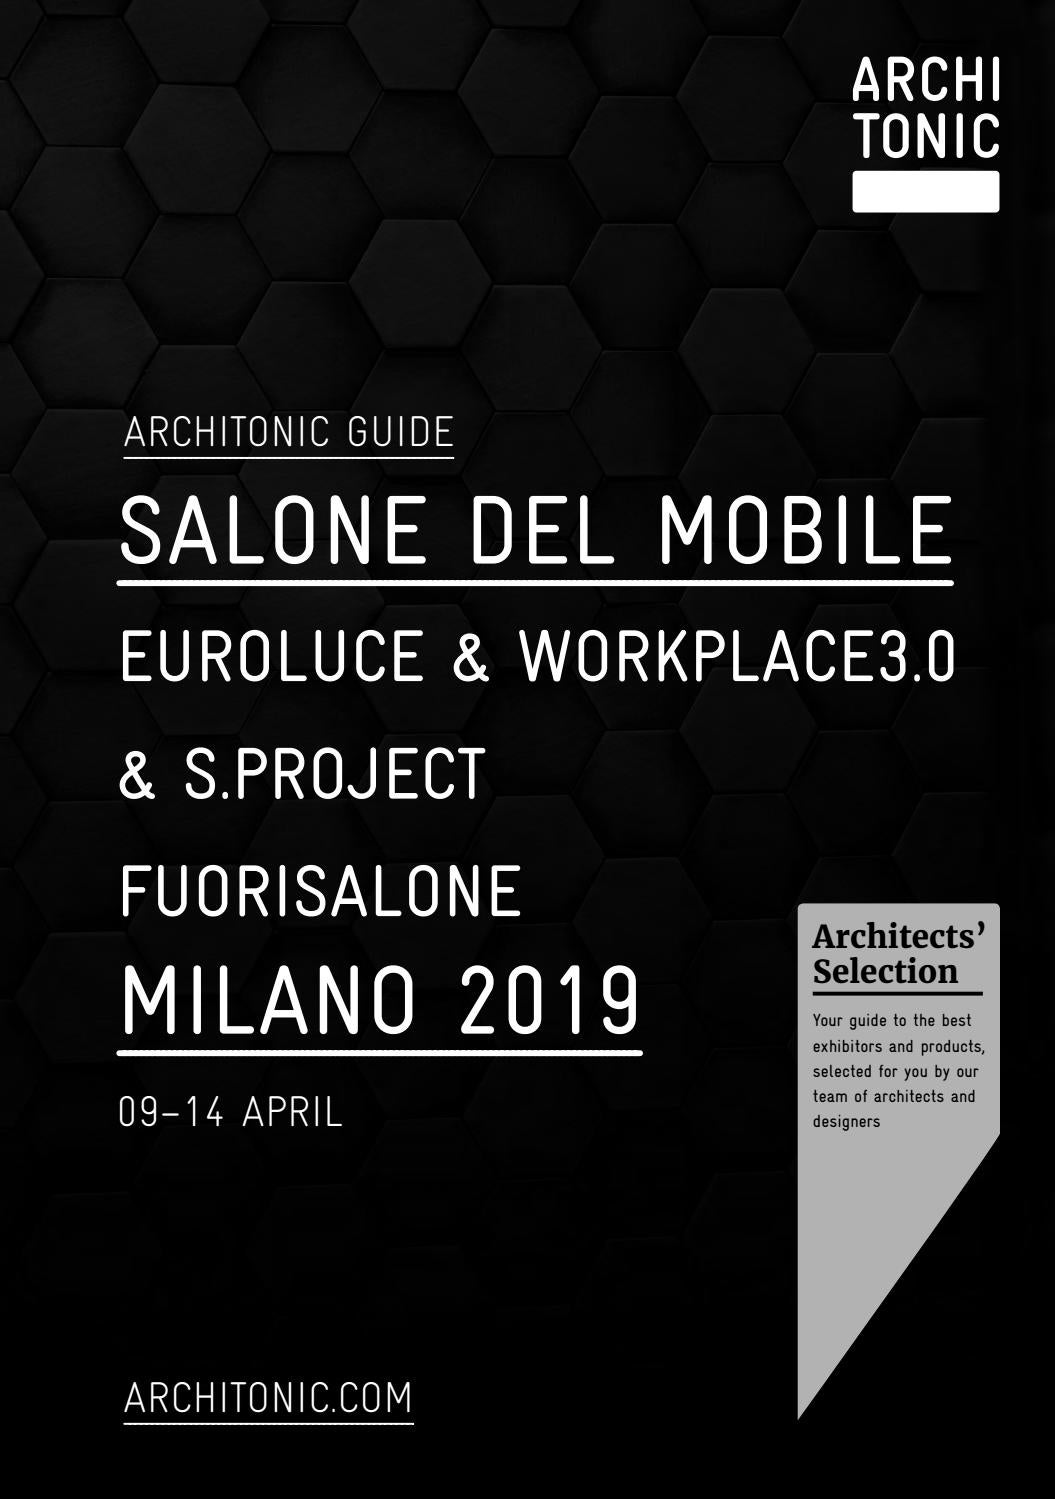 Quinti Sedute New York Architonic Guide Salone Del Mobile Milano 2019 By Gärtner